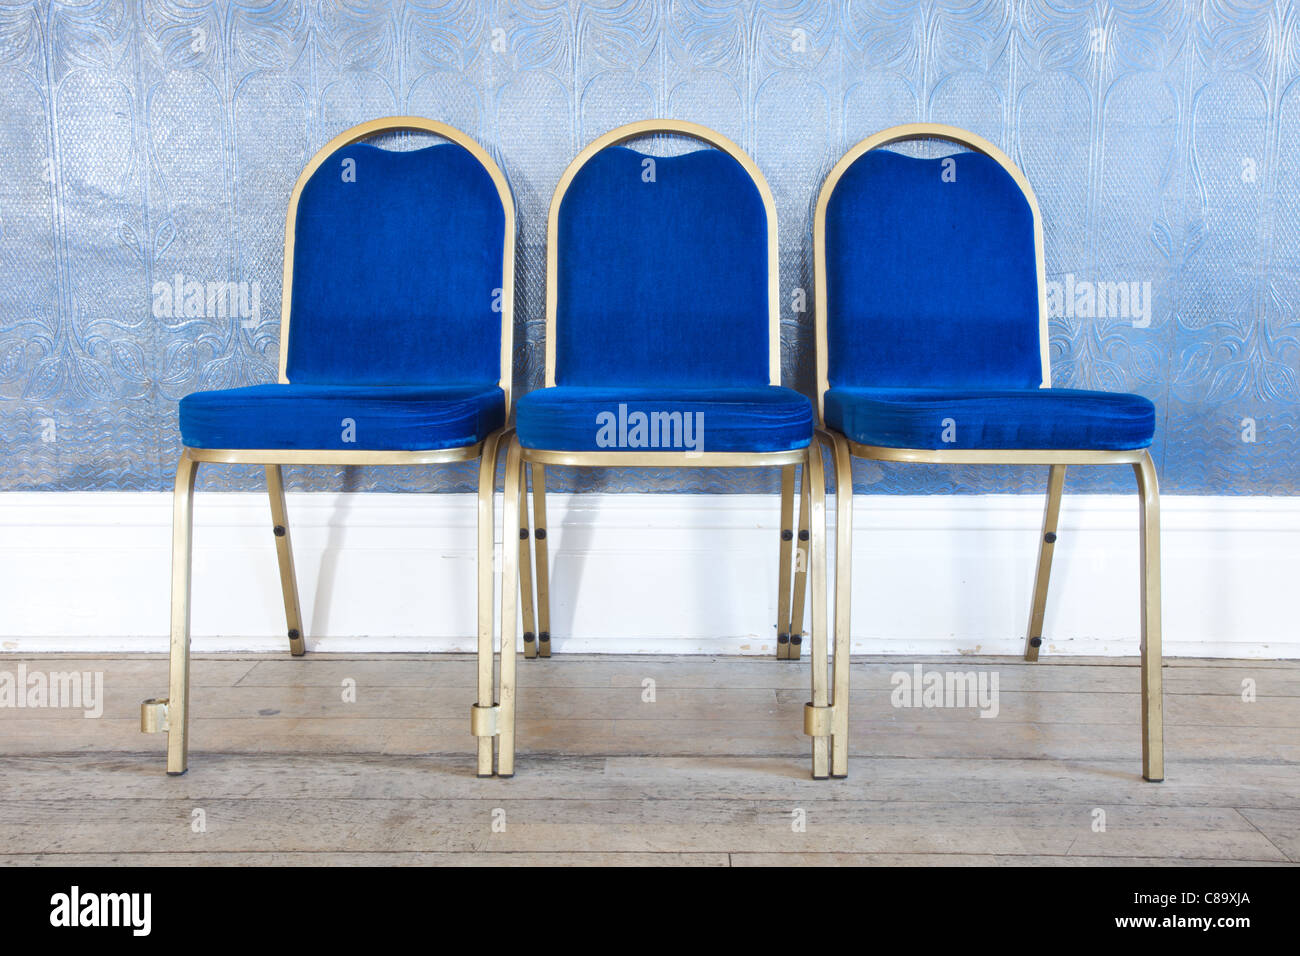 Chairs lined up neatly in the Miners Welfare Club in Horden, County Durham, England - Stock Image